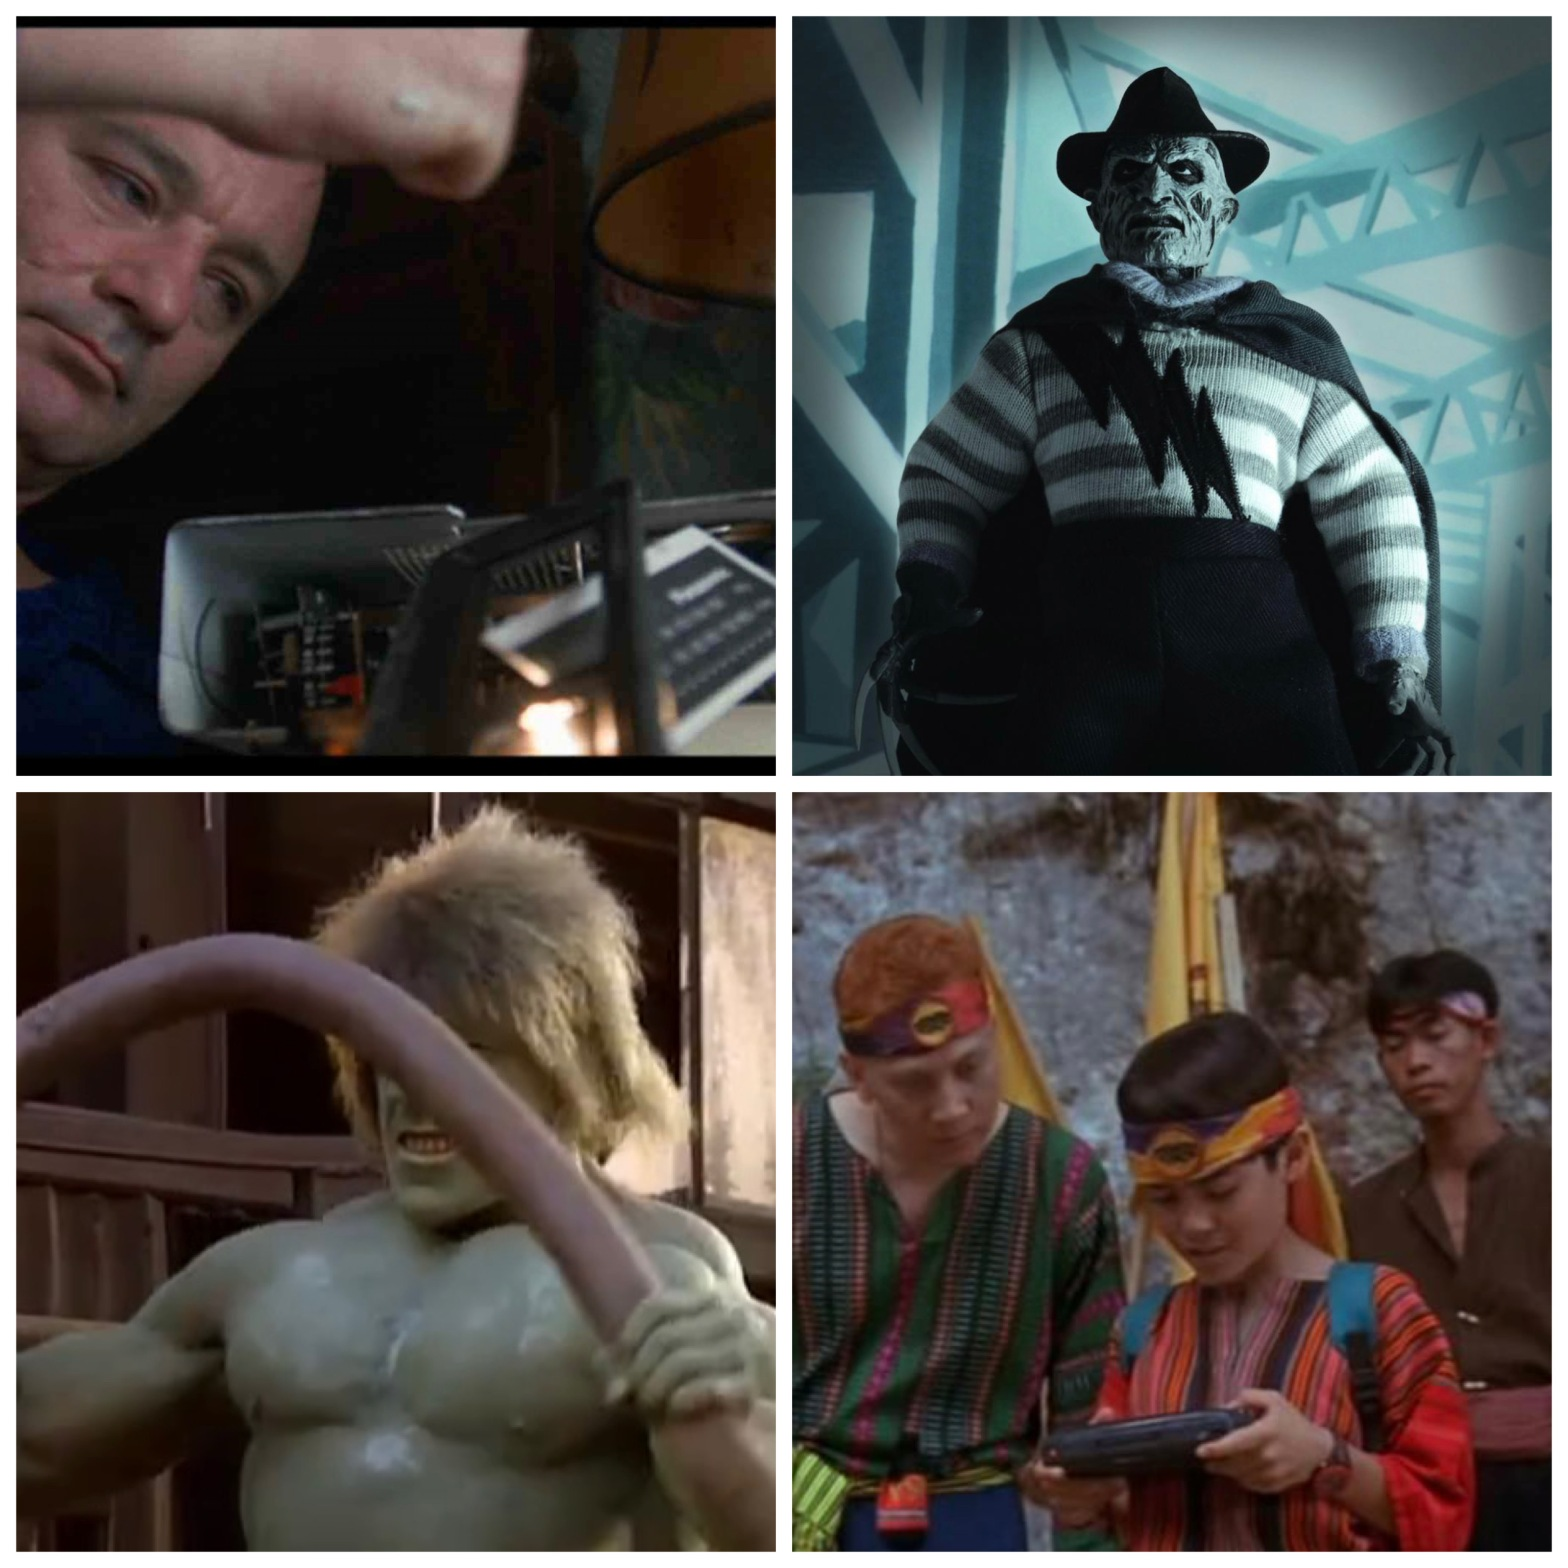 Bill Murray in Groundhog Day, Super Freddy from A Nightmare on Elm Street 5: The Dream Child, Lou Ferrigno as the Incredible Hulk, and a Sega Game Gear from Surf Ninjas.